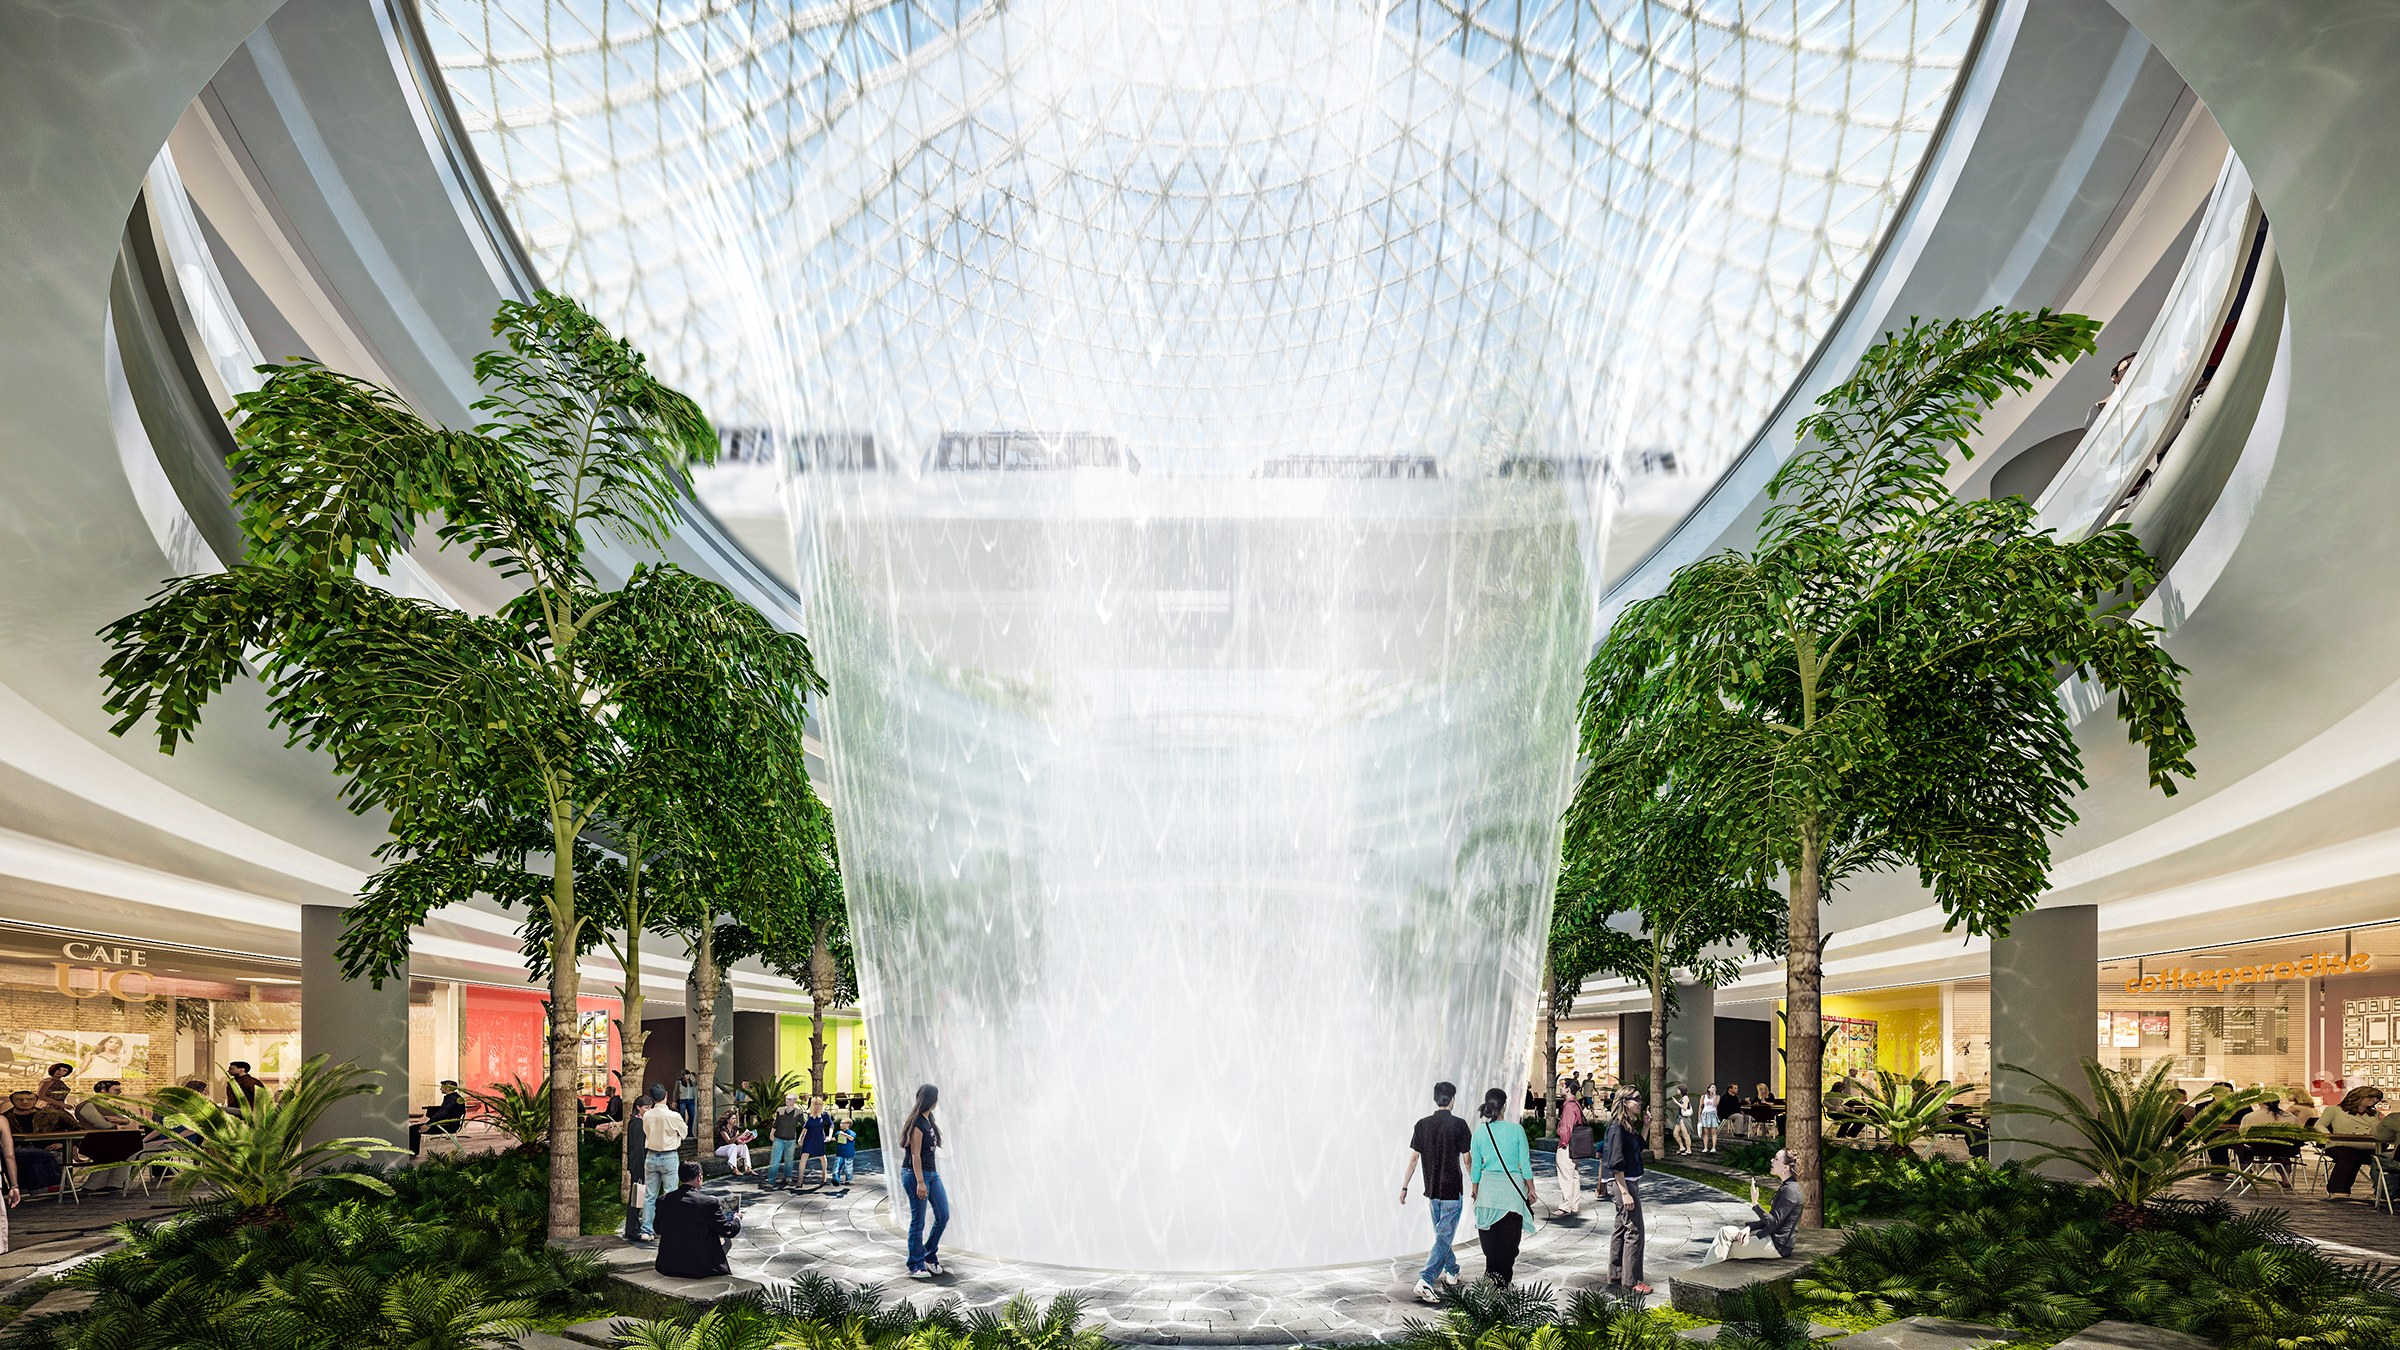 Safdie S Changi Airport Will House The World S Tallest Indoor Waterfall Green Prophet